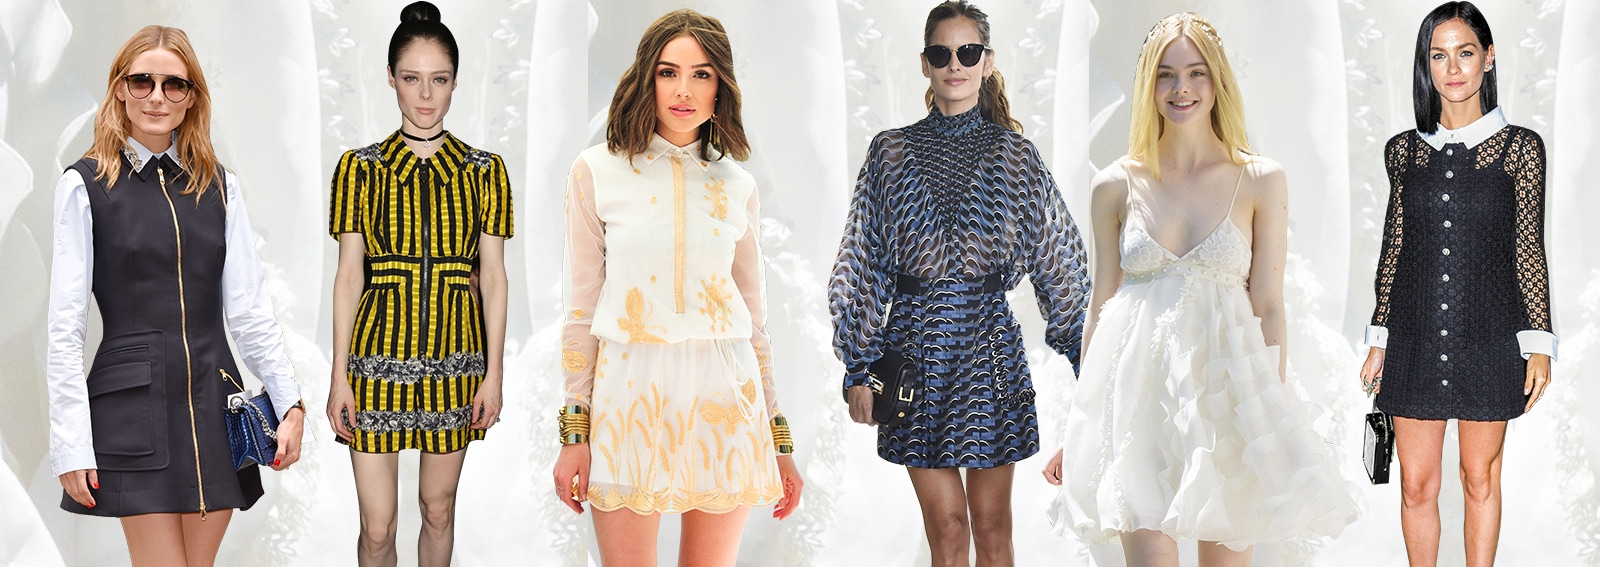 cover mini dress per l'estate le versioni preferite dalle celeb dekstop